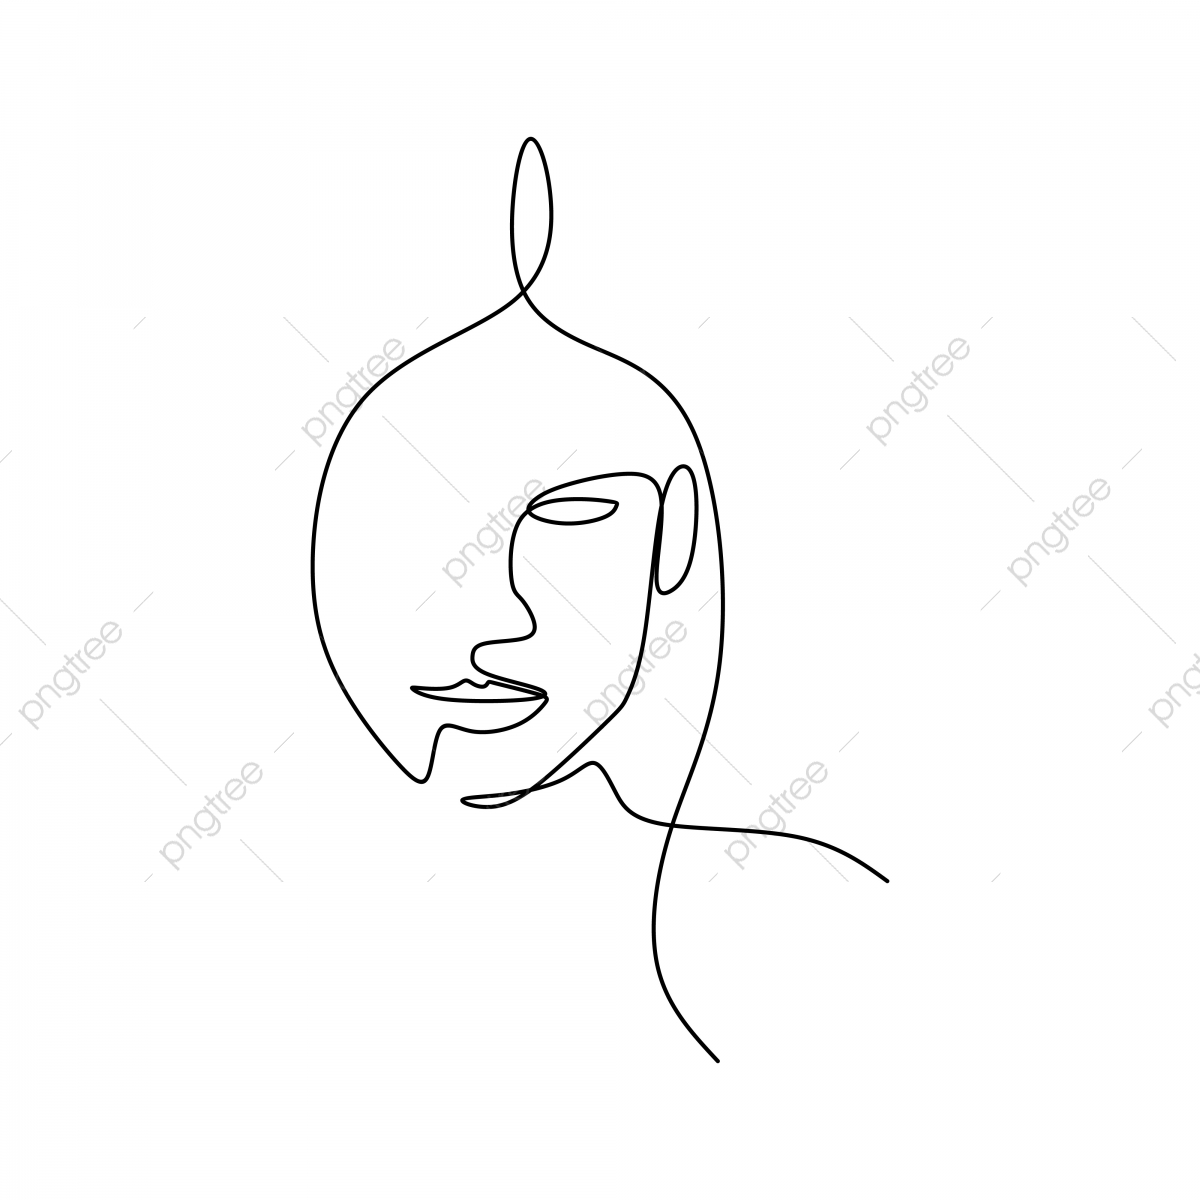 Commercial use resource. Upgrade to Premium plan and get license authorization.UpgradeNow · abstract face continuous one line drawing ...